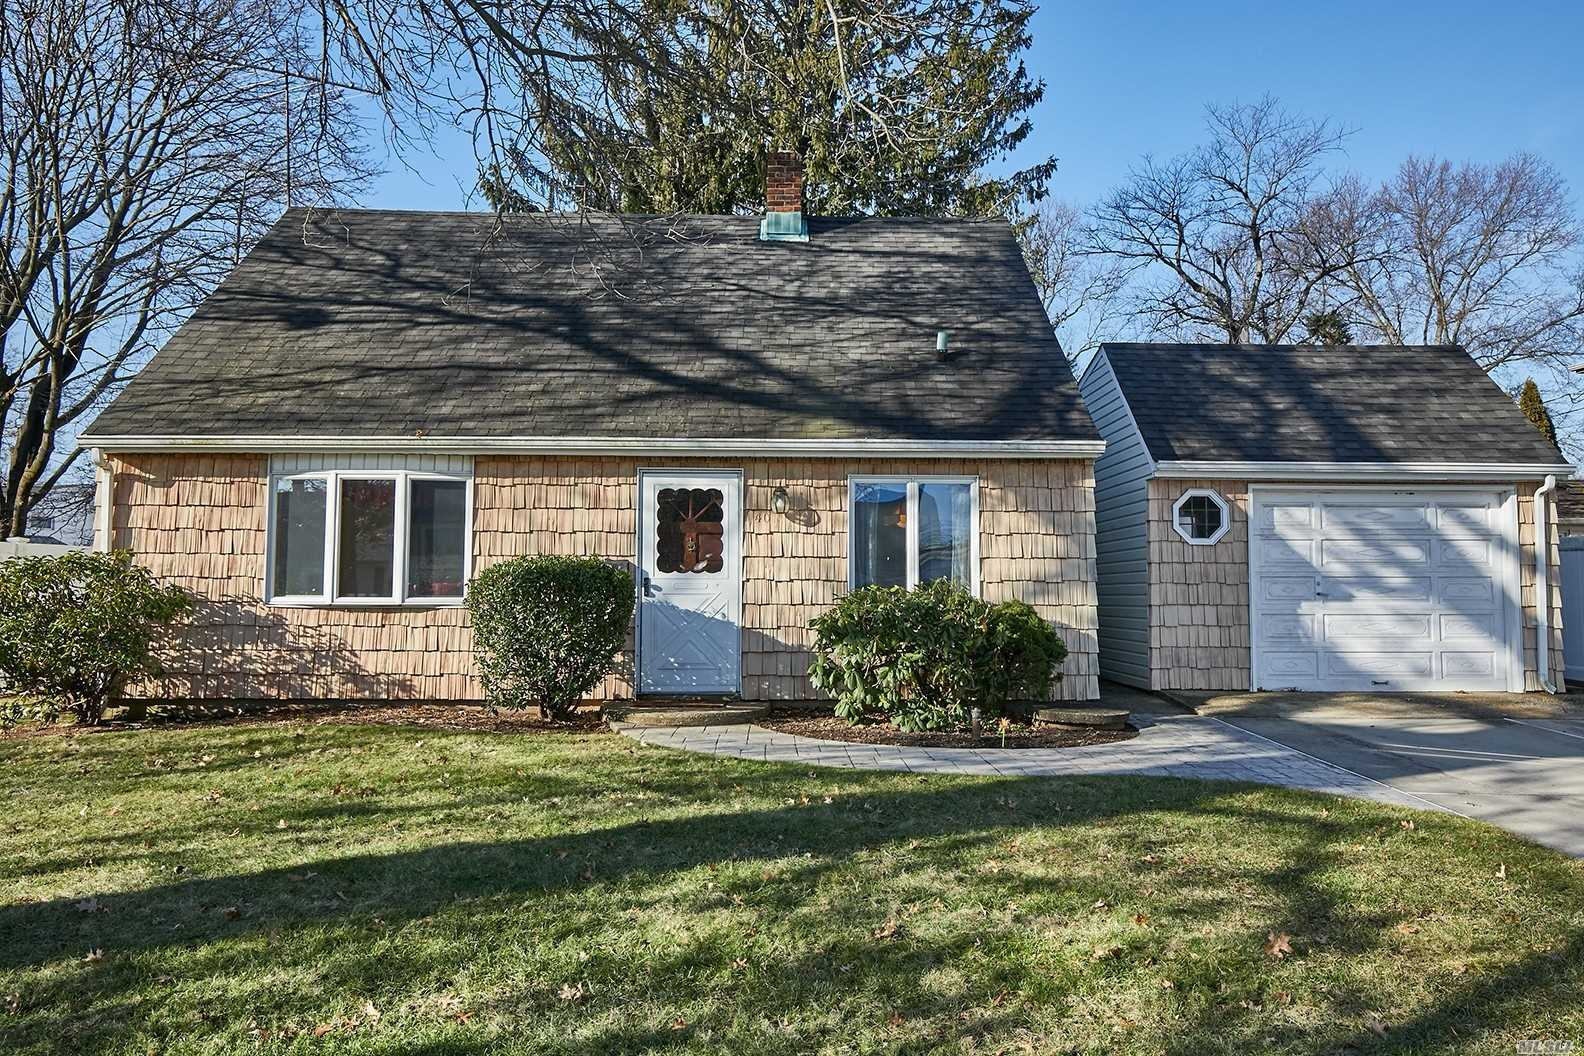 Rear Dormered Expanded Cape In The Flower Section Boasts 5 Bedrooms (1 Currently Being Used As Dr), Large Living Room, 2 Full Baths & Office/Nursery. Sitting On A Picturesque Oversized Lot. 1.5 Car Detached Garage & 4 Car Driveway.